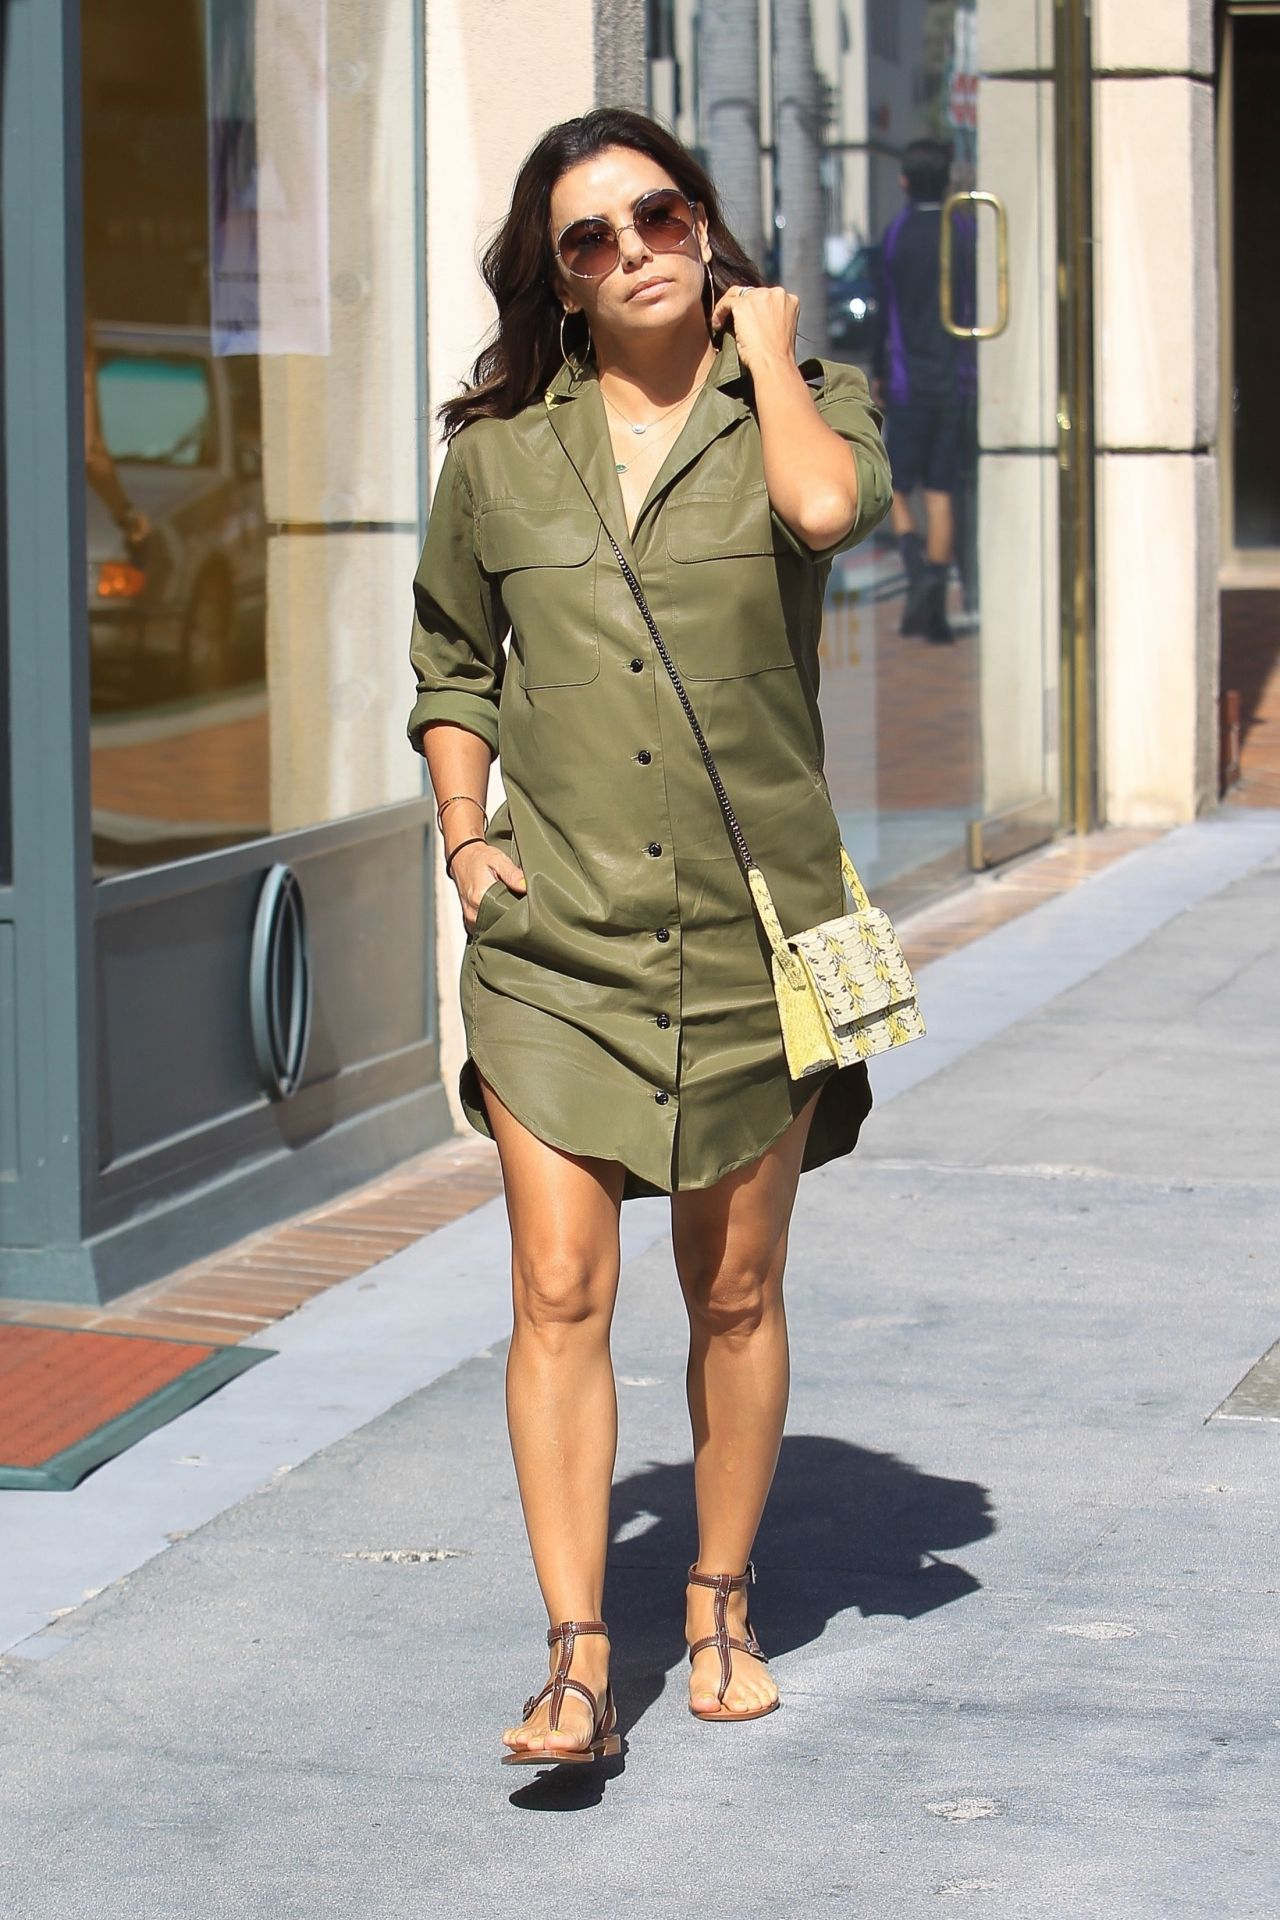 Eva Longoria out in army green